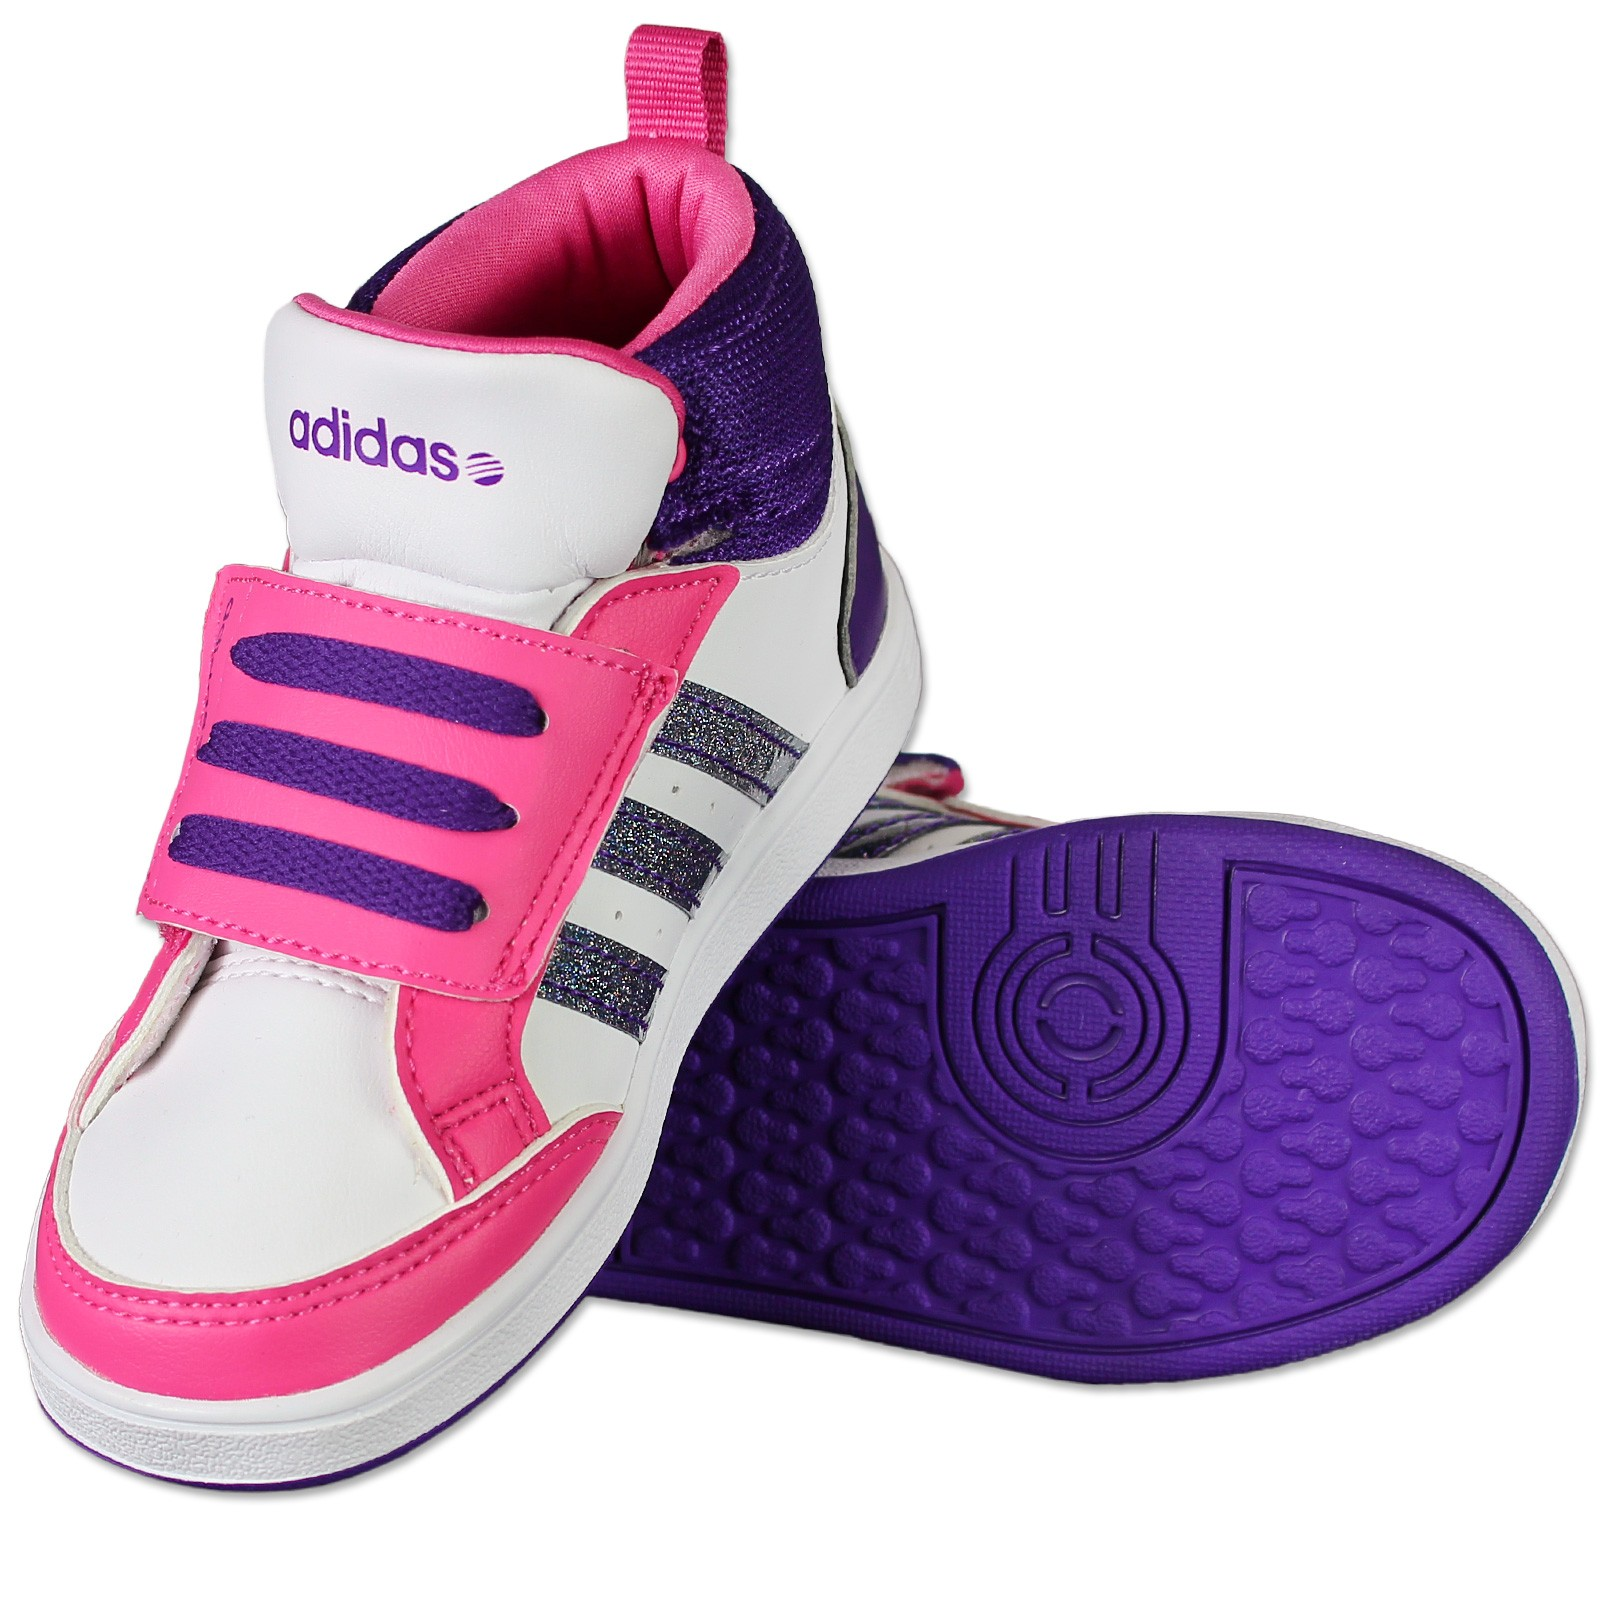 adidas neo hoops mid kinderschuhe baby schuhe f97857 glitzer weiss pink lila 26 ebay. Black Bedroom Furniture Sets. Home Design Ideas